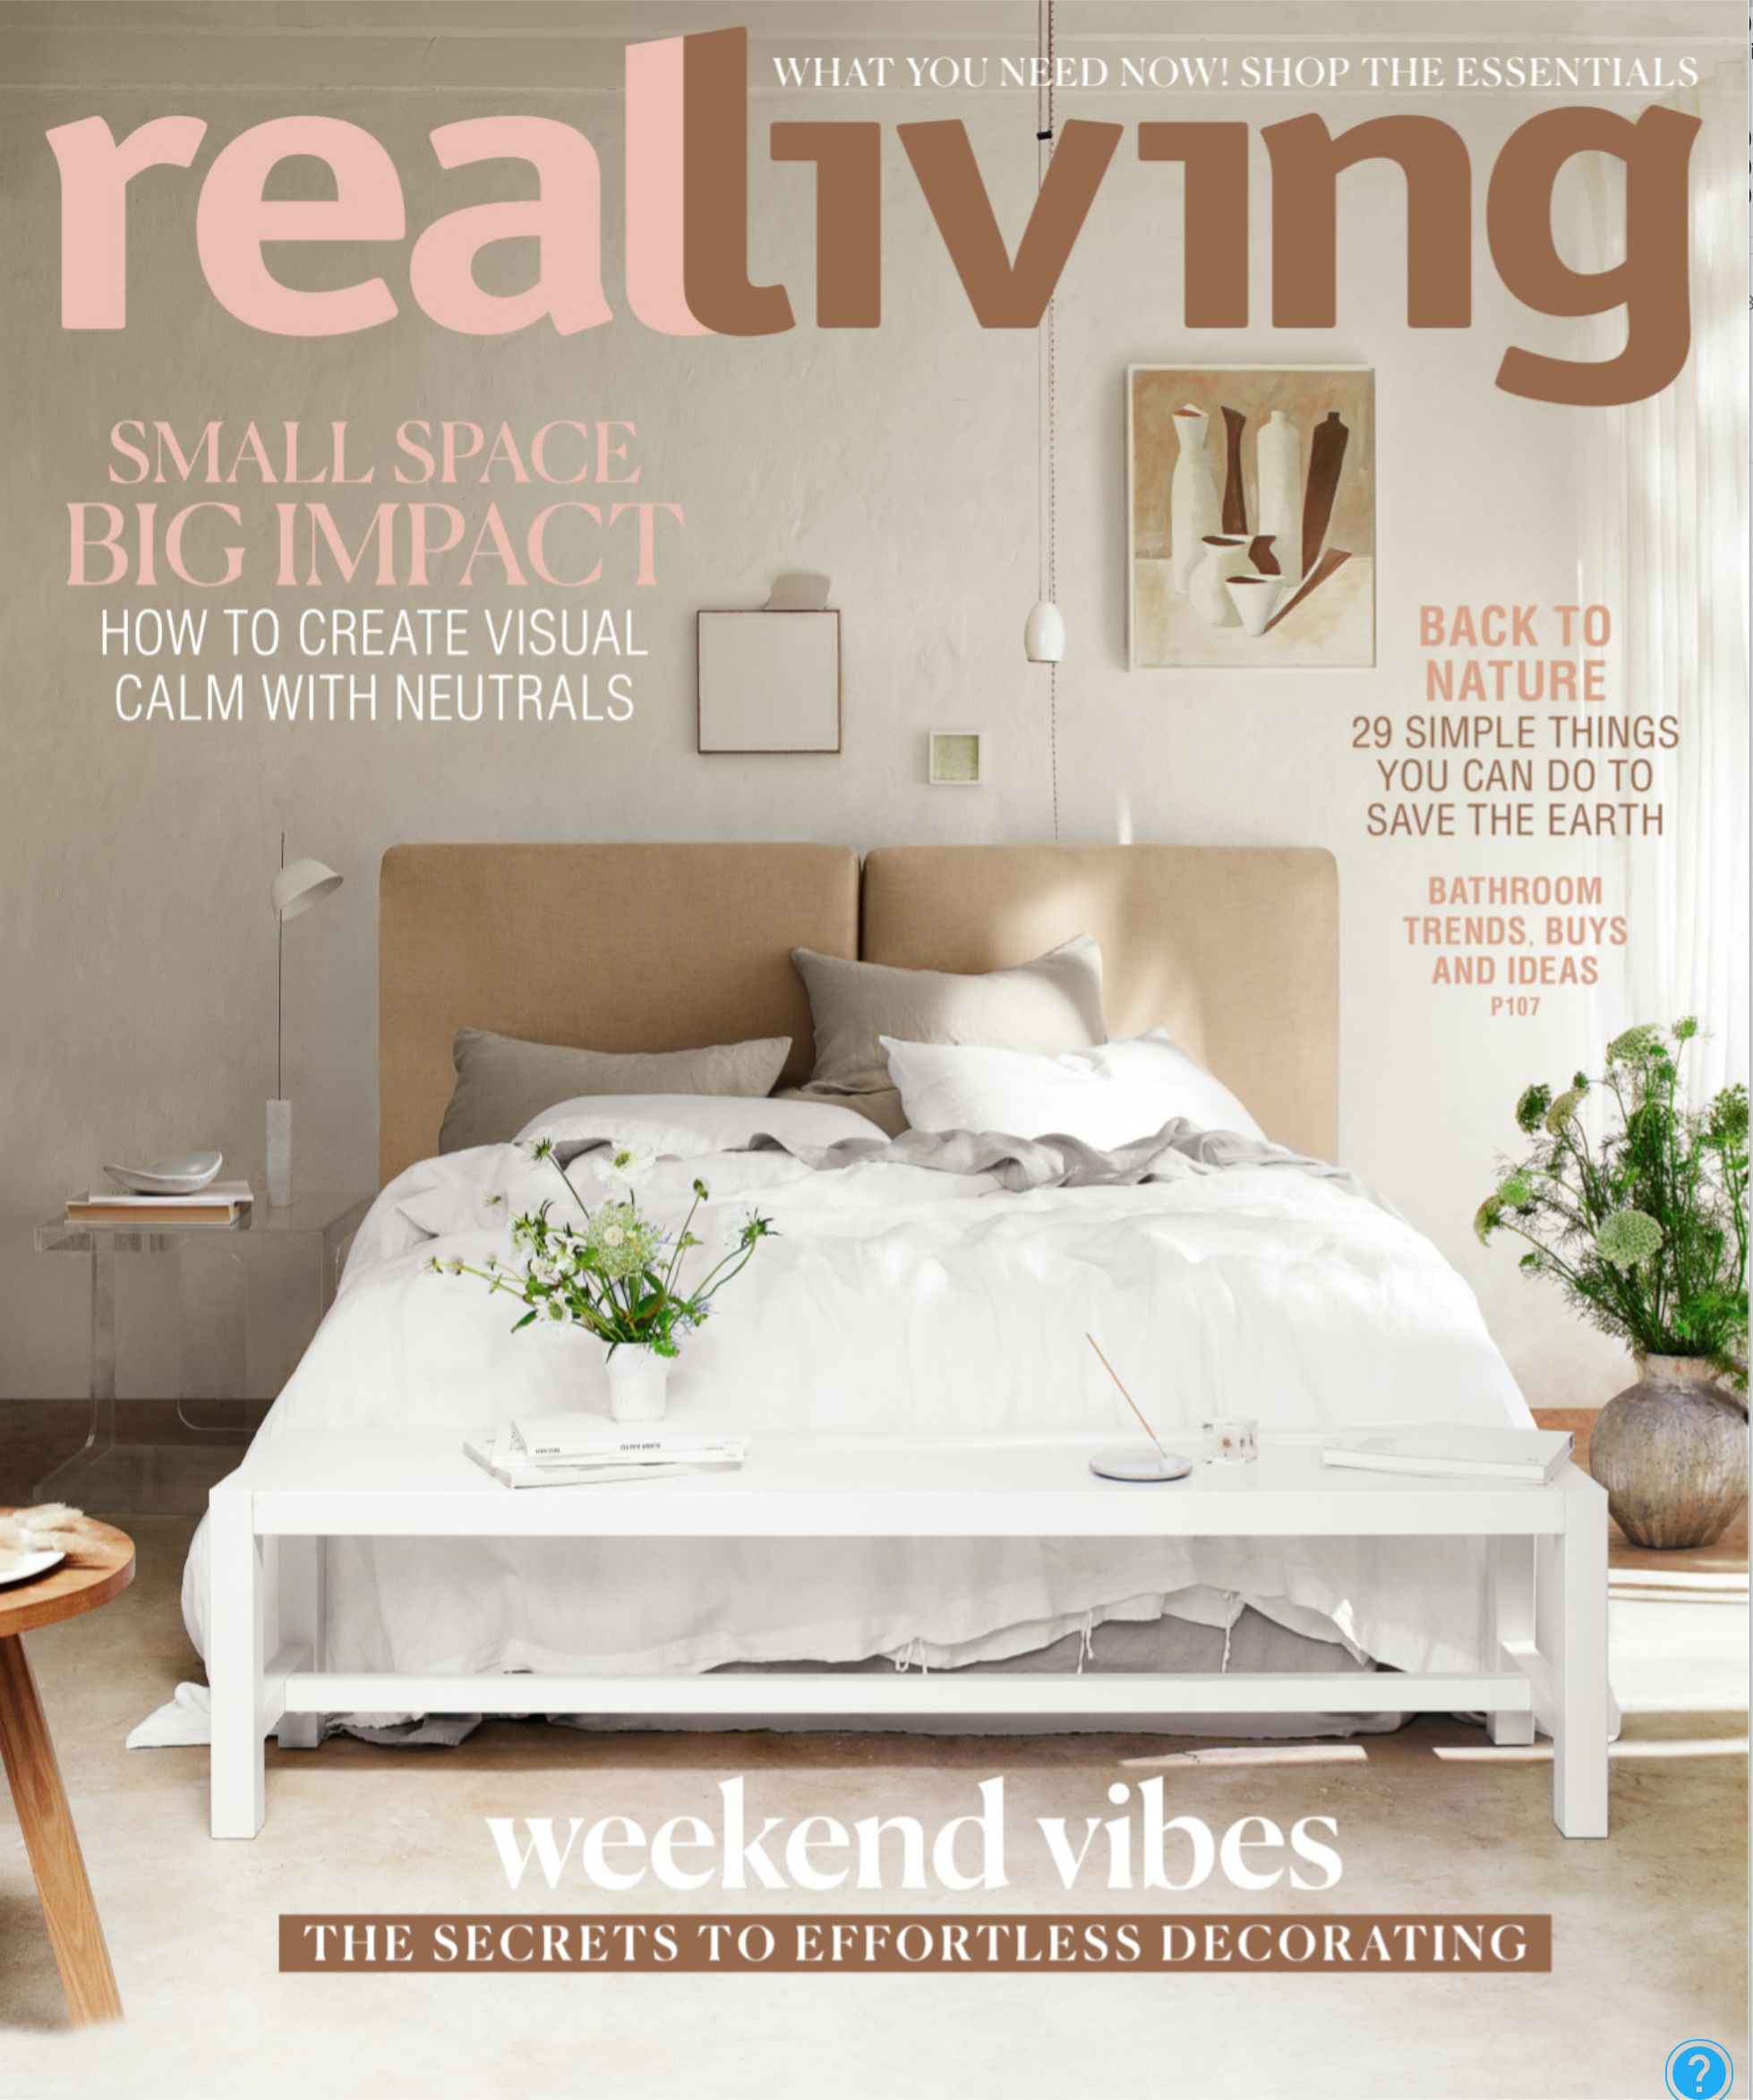 Real Living Jun 19 - Darlinghurst Terrace by Tom Mark Henry styling by Claire Delmar